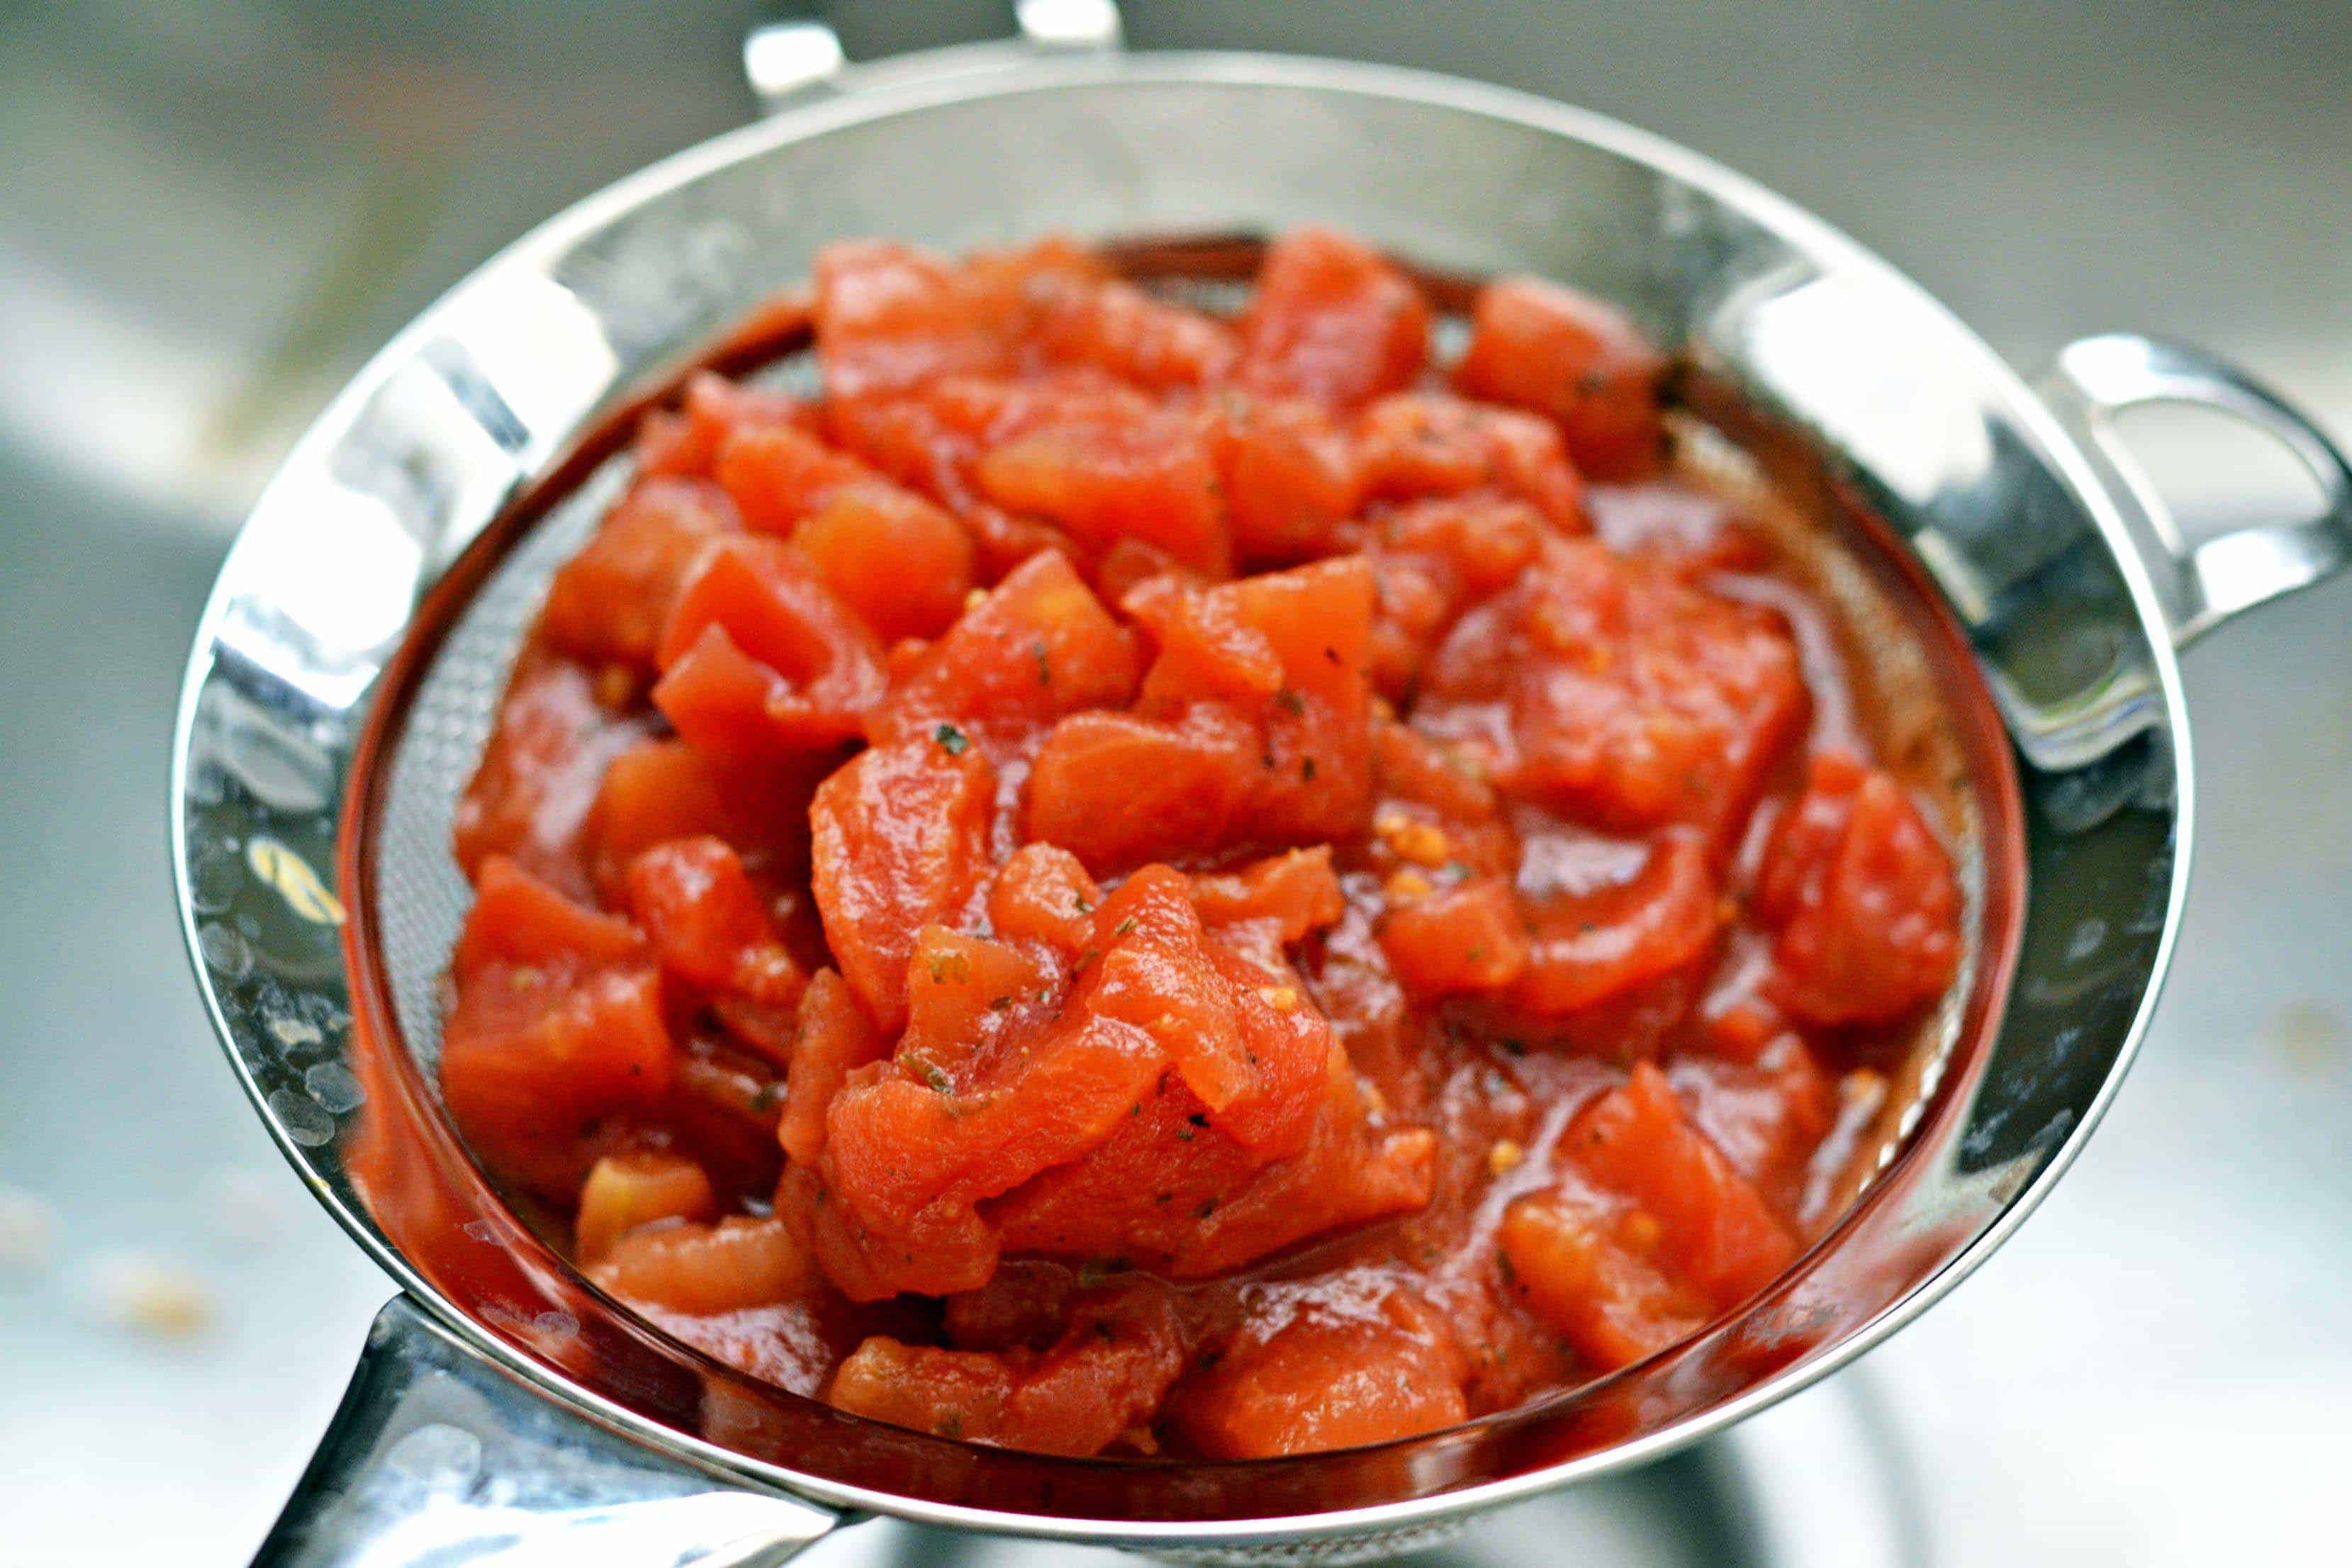 tomatoes draining in a strainer